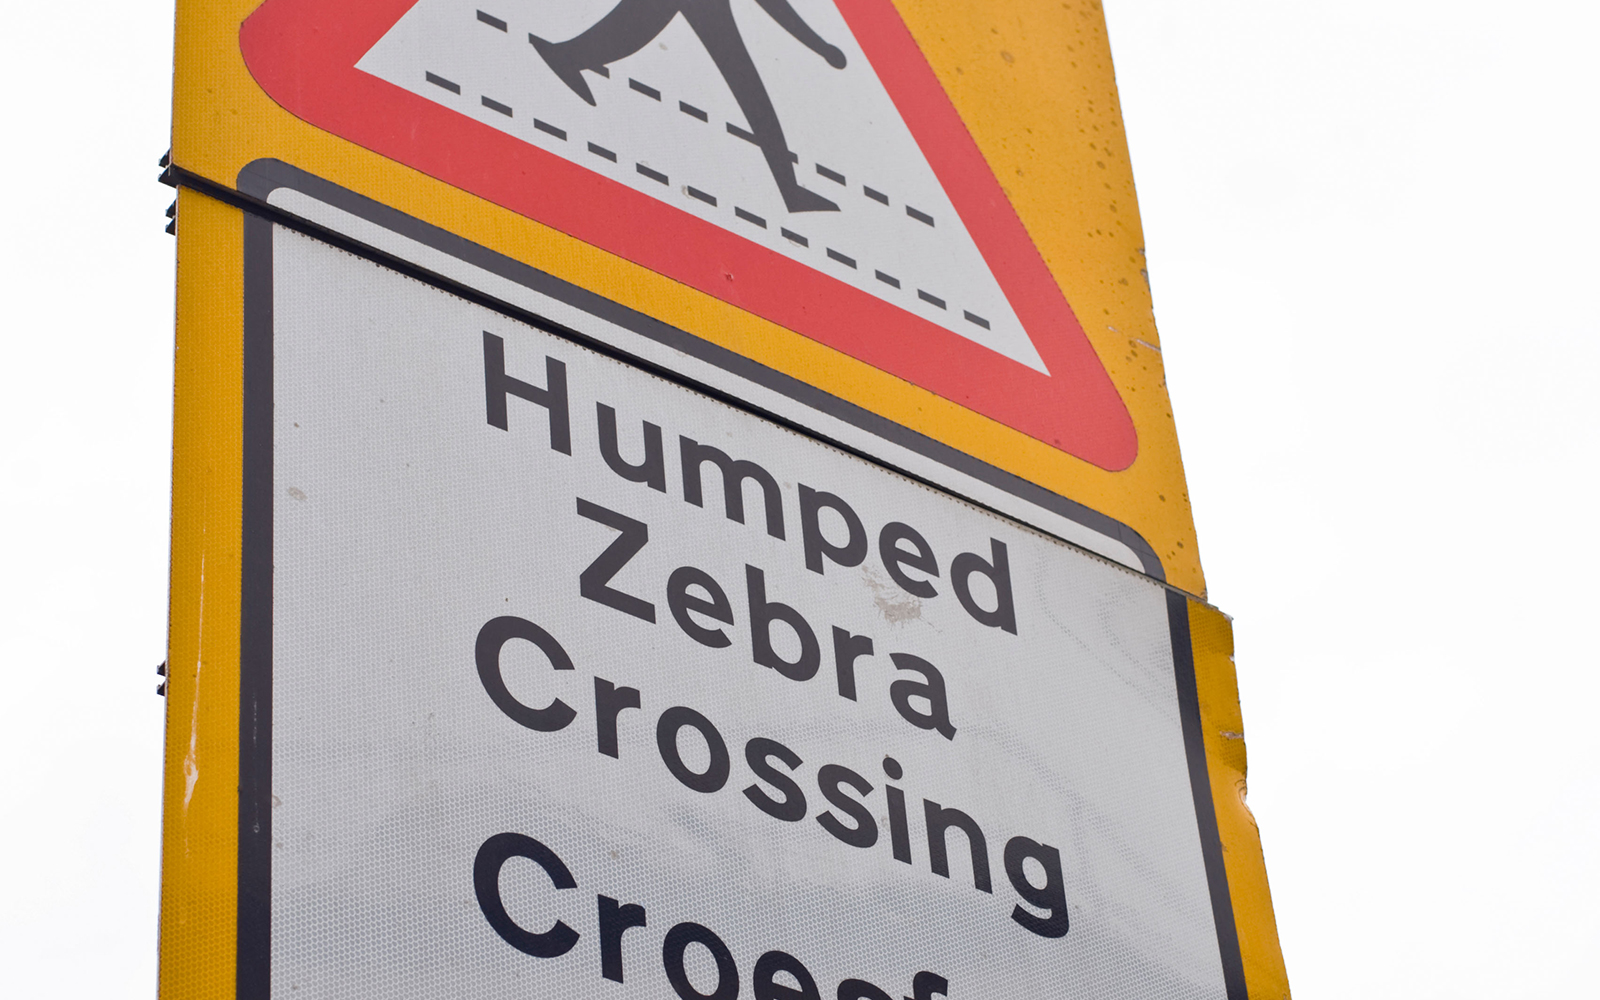 Funny Signs from Around the World: humped zebra crossing